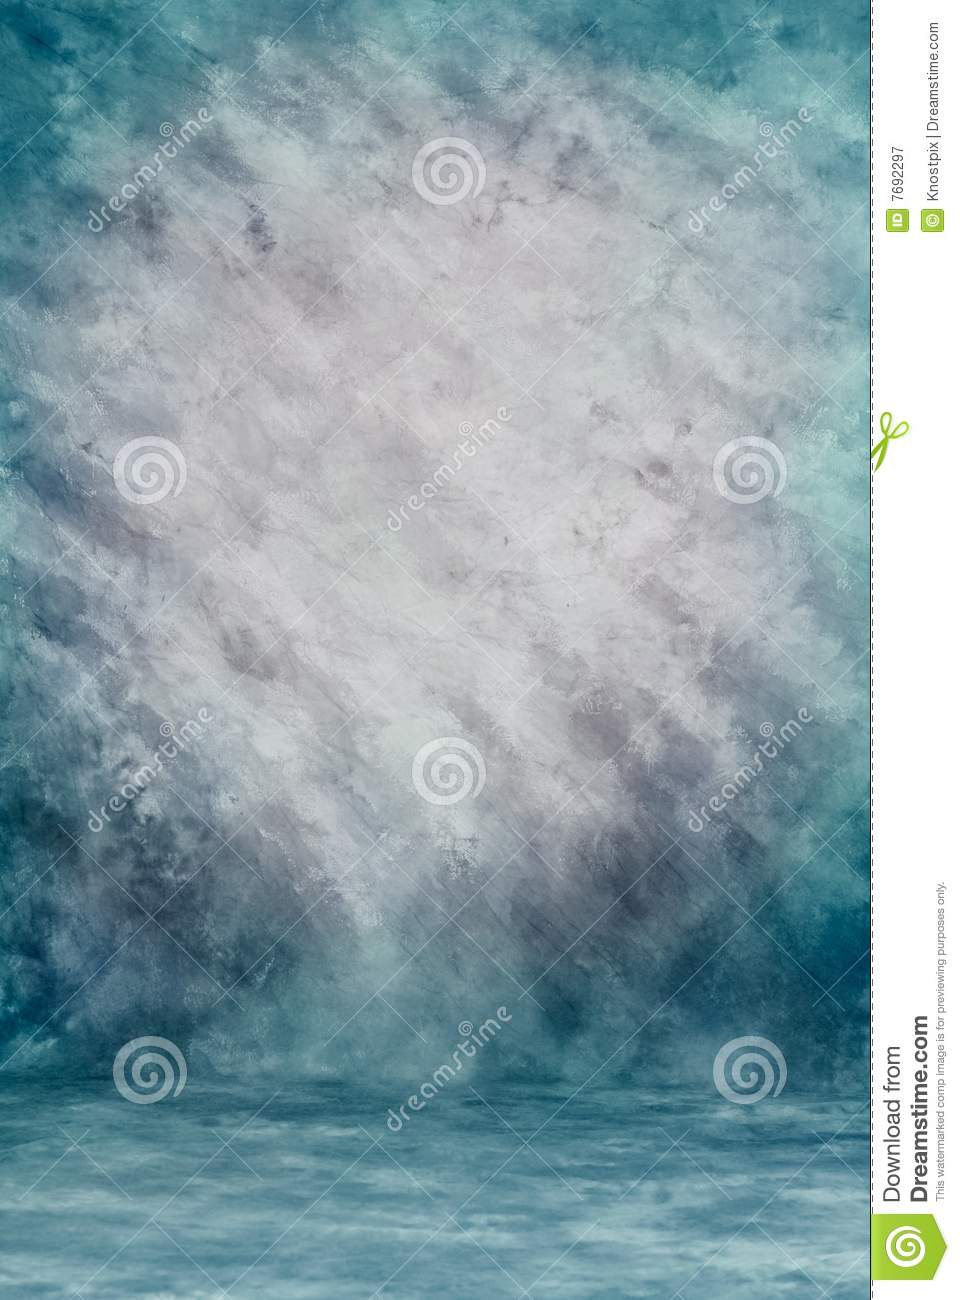 cloth studio backdrop or background royalty free stock